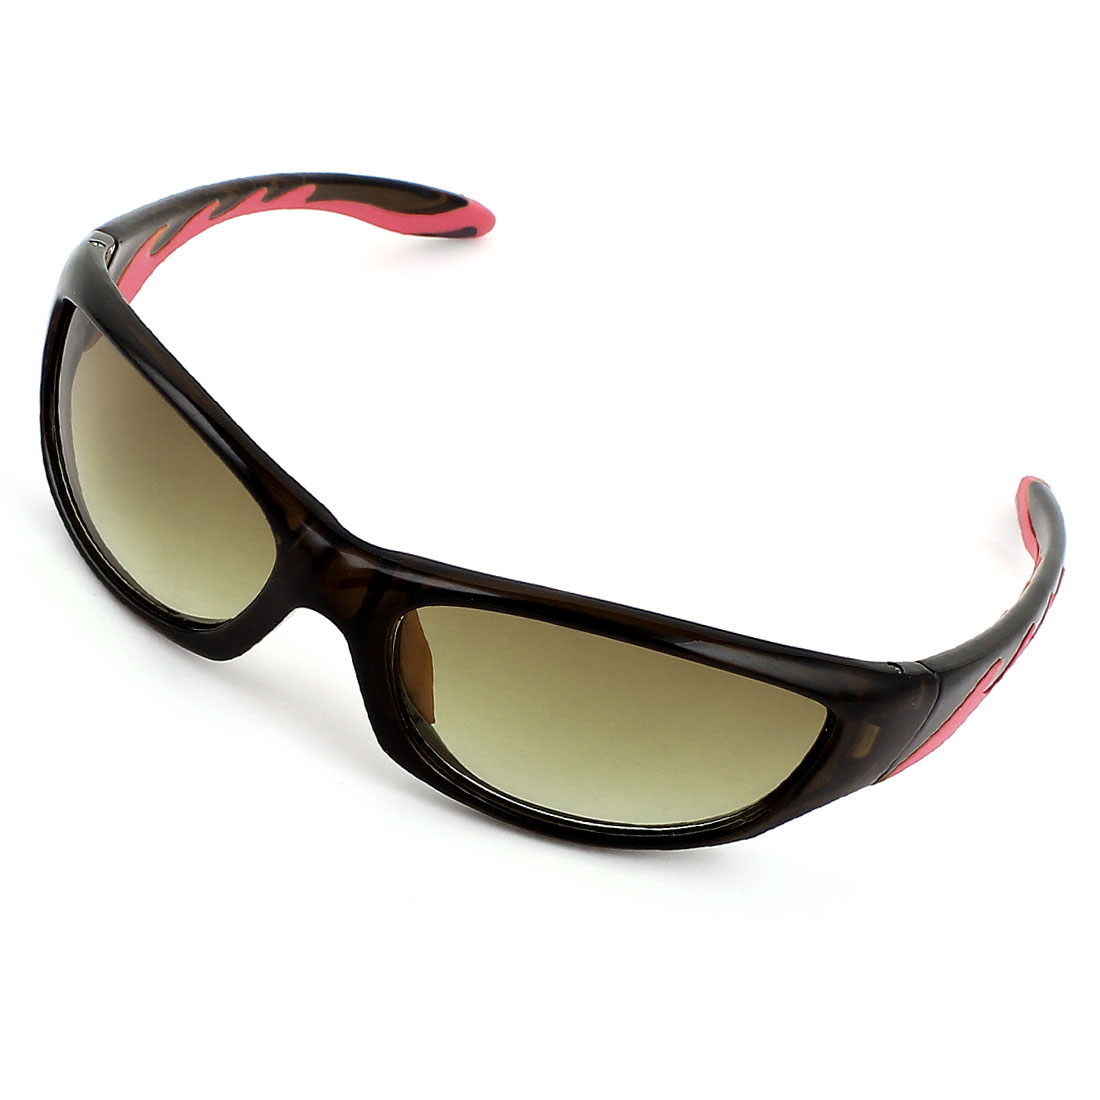 Man Plastic Full Rim Rectangle Lens Glasses Sunglasses Eyewear Brown Red